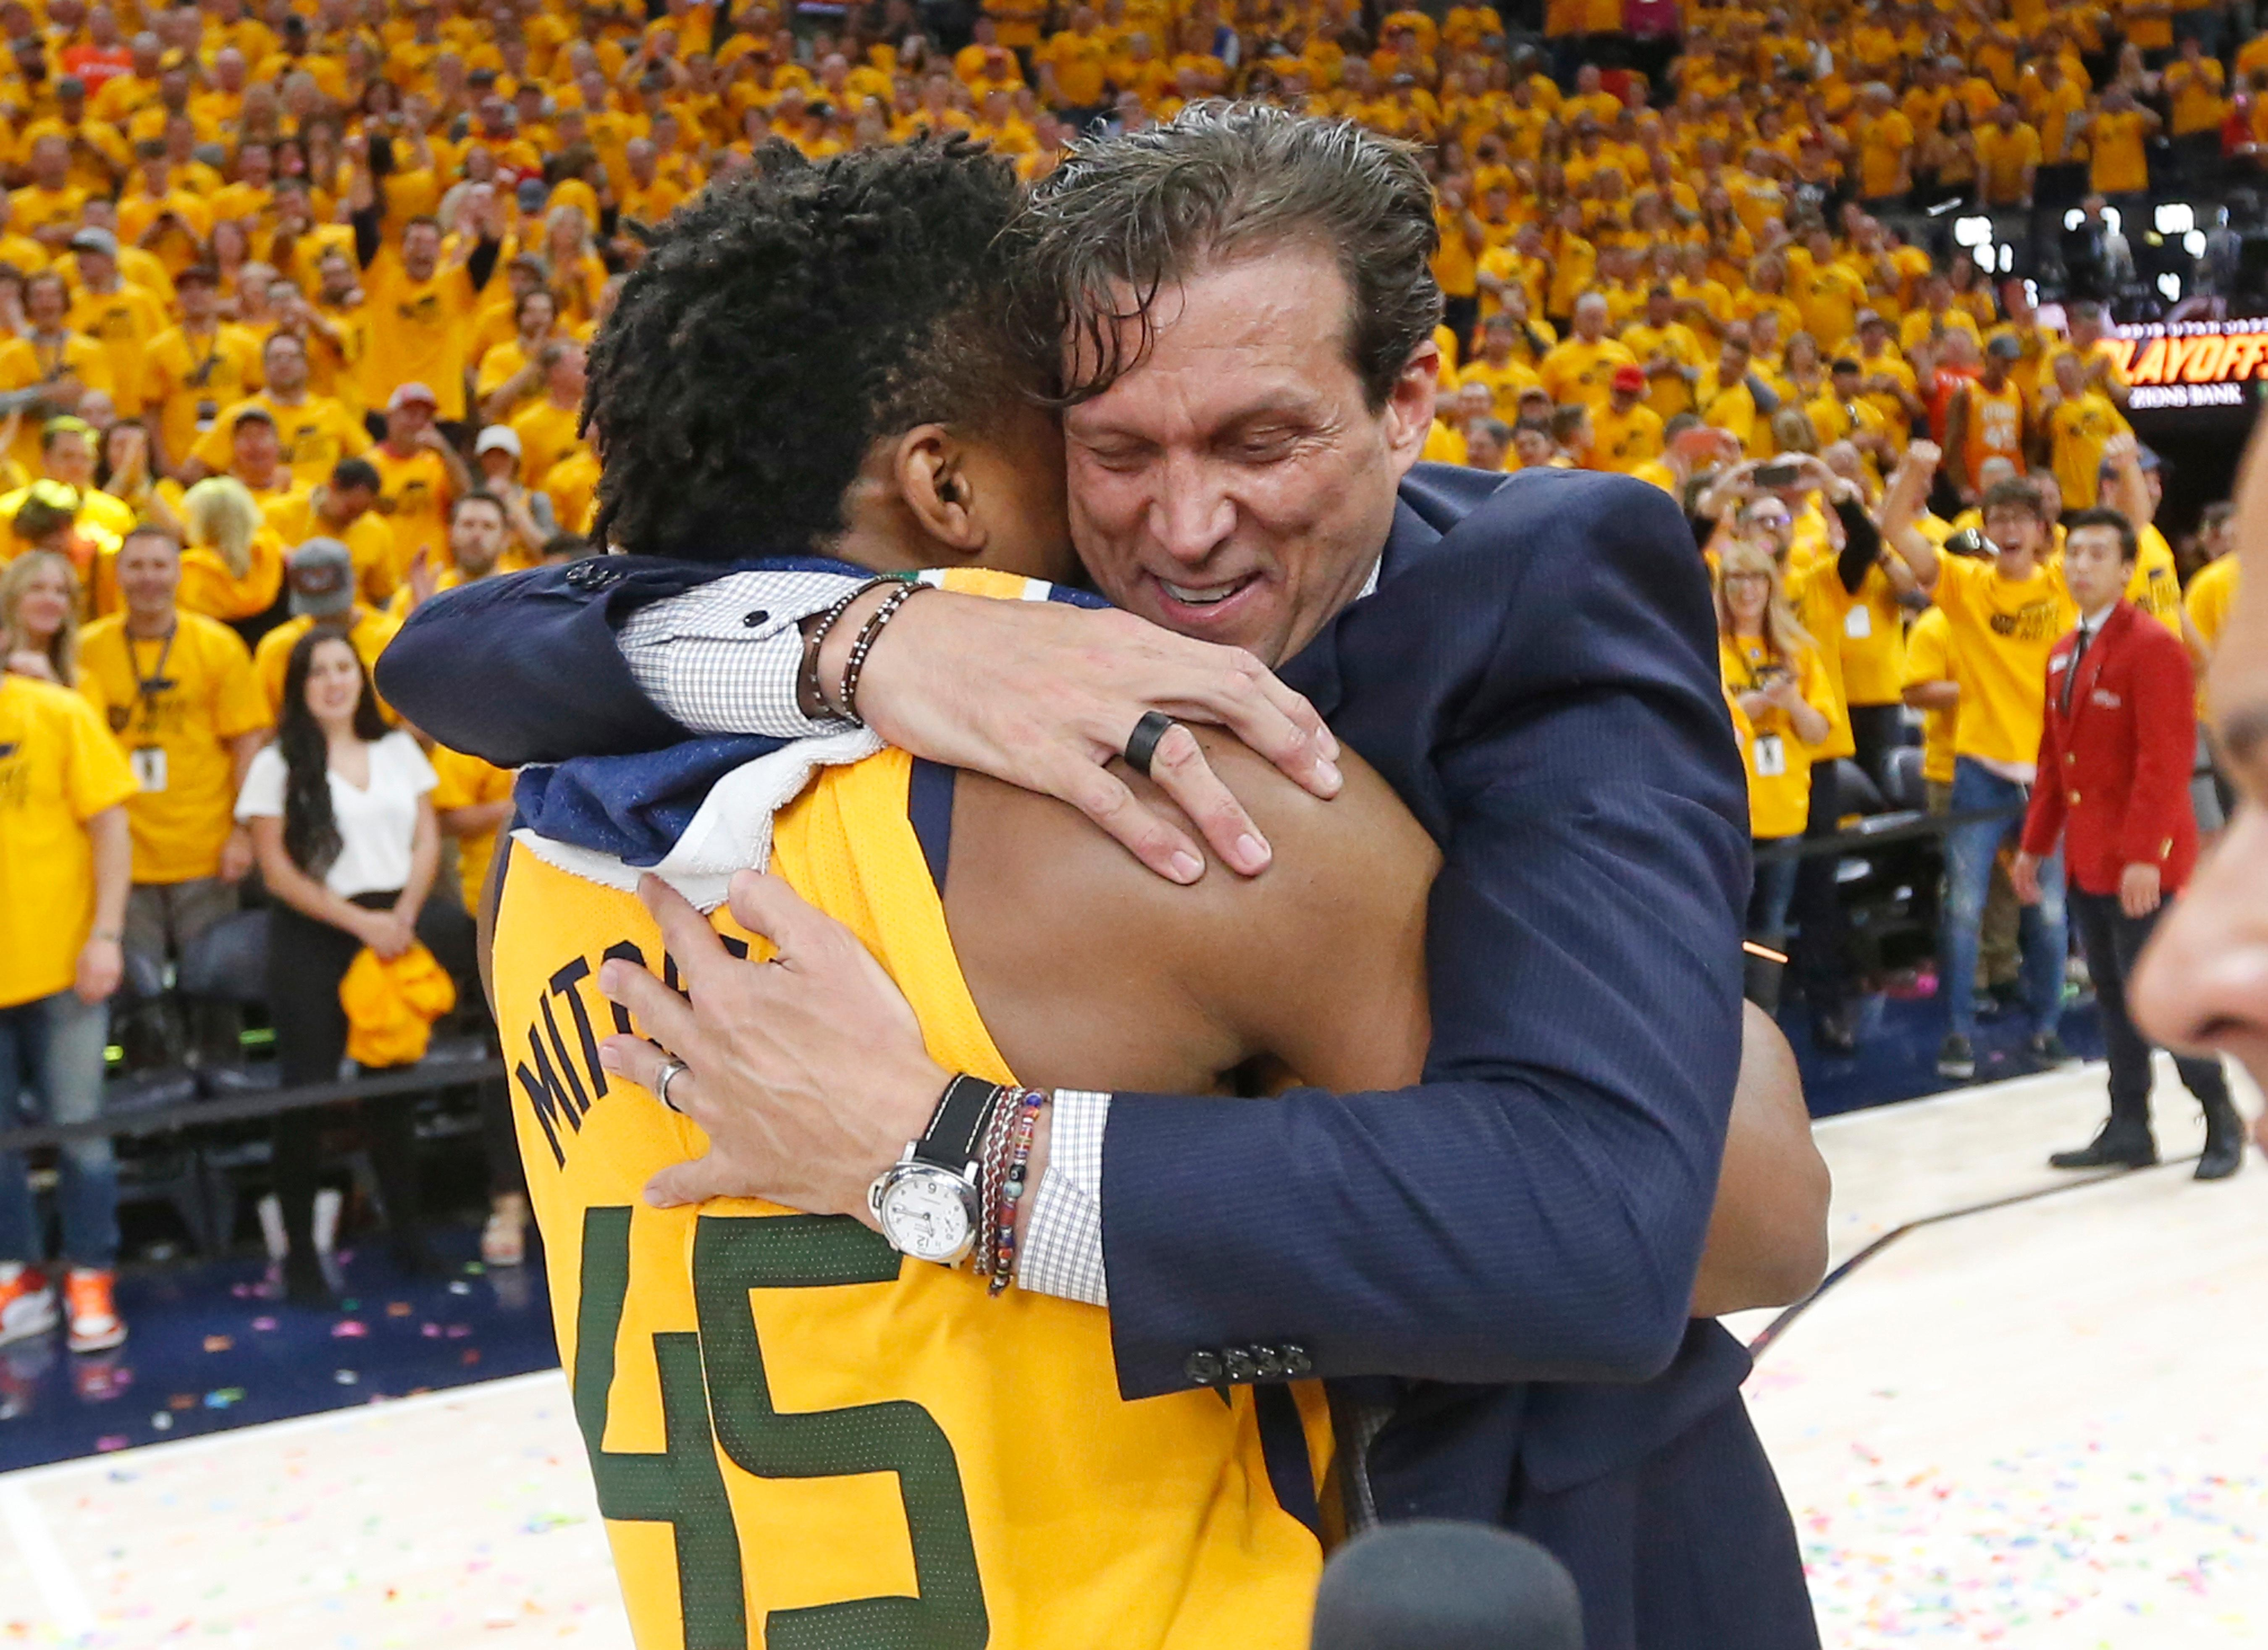 Utah Jazz coach Quin Snyder hugs guard Donovan Mitchell (45) after the team's 96-91 victory over the Oklahoma City Thunder during Game 6 of an NBA basketball first-round playoff series Friday, April 27, 2018, in Salt Lake City. The Jazz won the series. (AP Photo/Rick Bowmer)